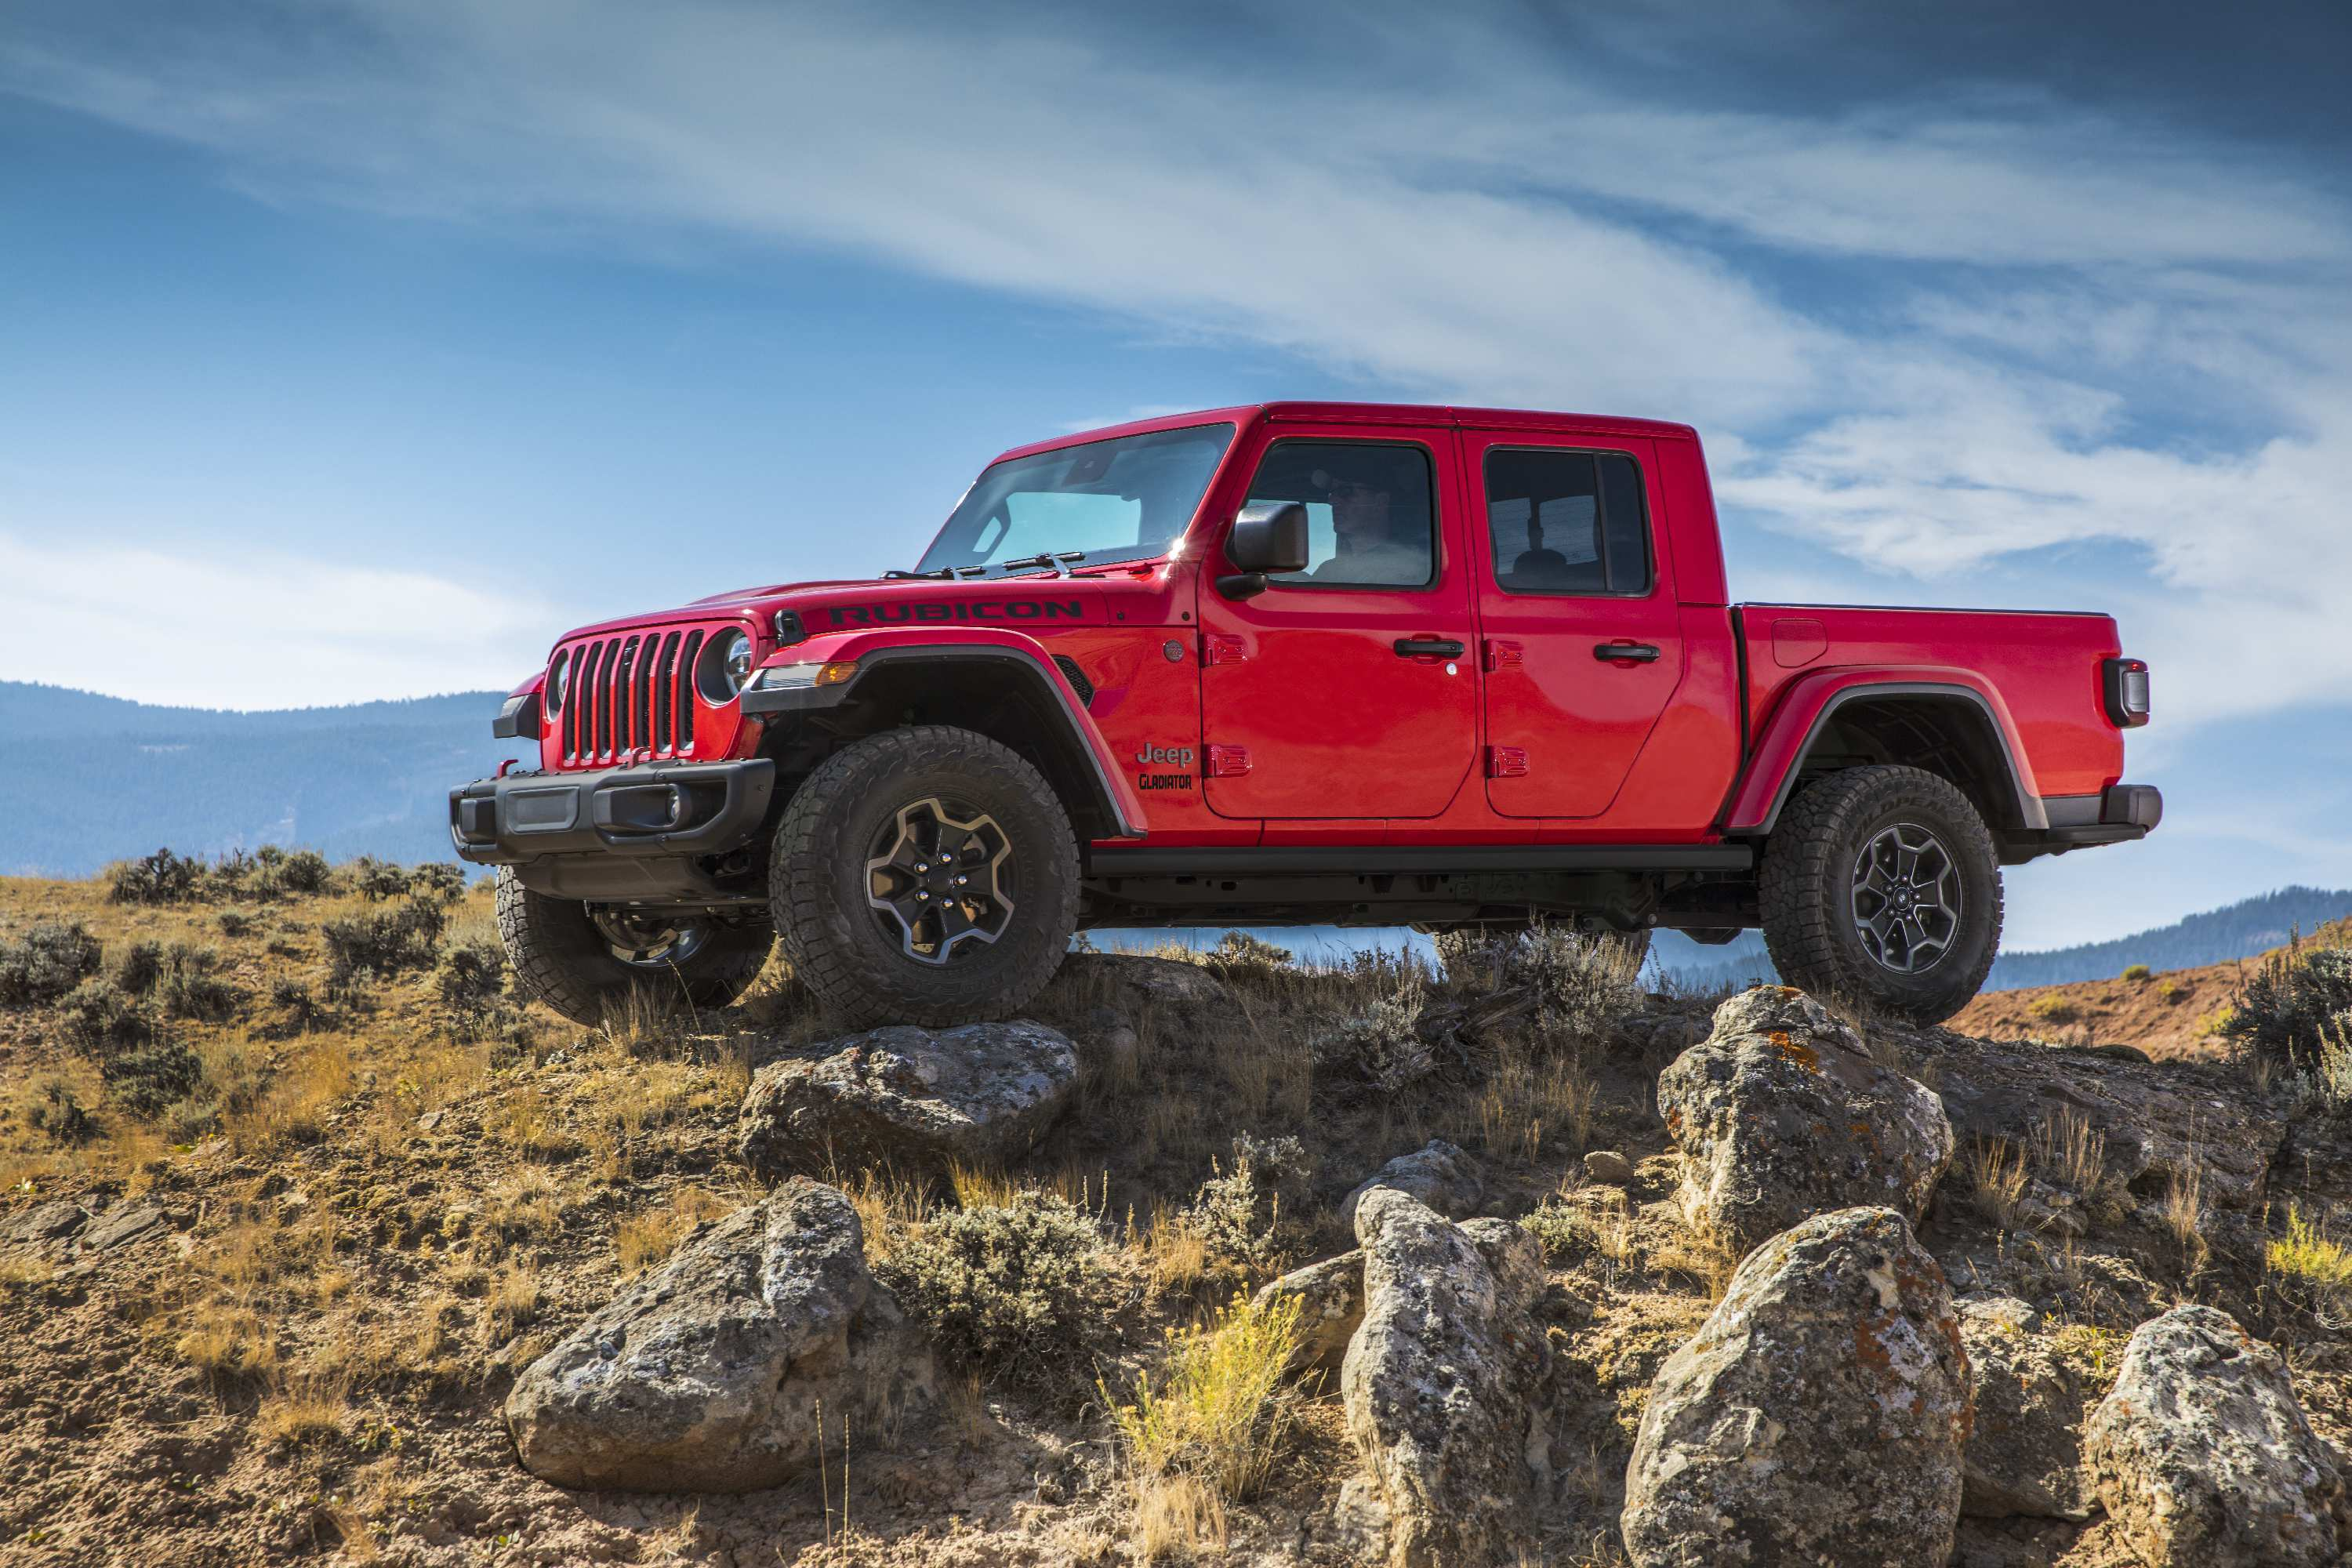 90 All New When Is The 2020 Jeep Gladiator Coming Out Exterior And Interior